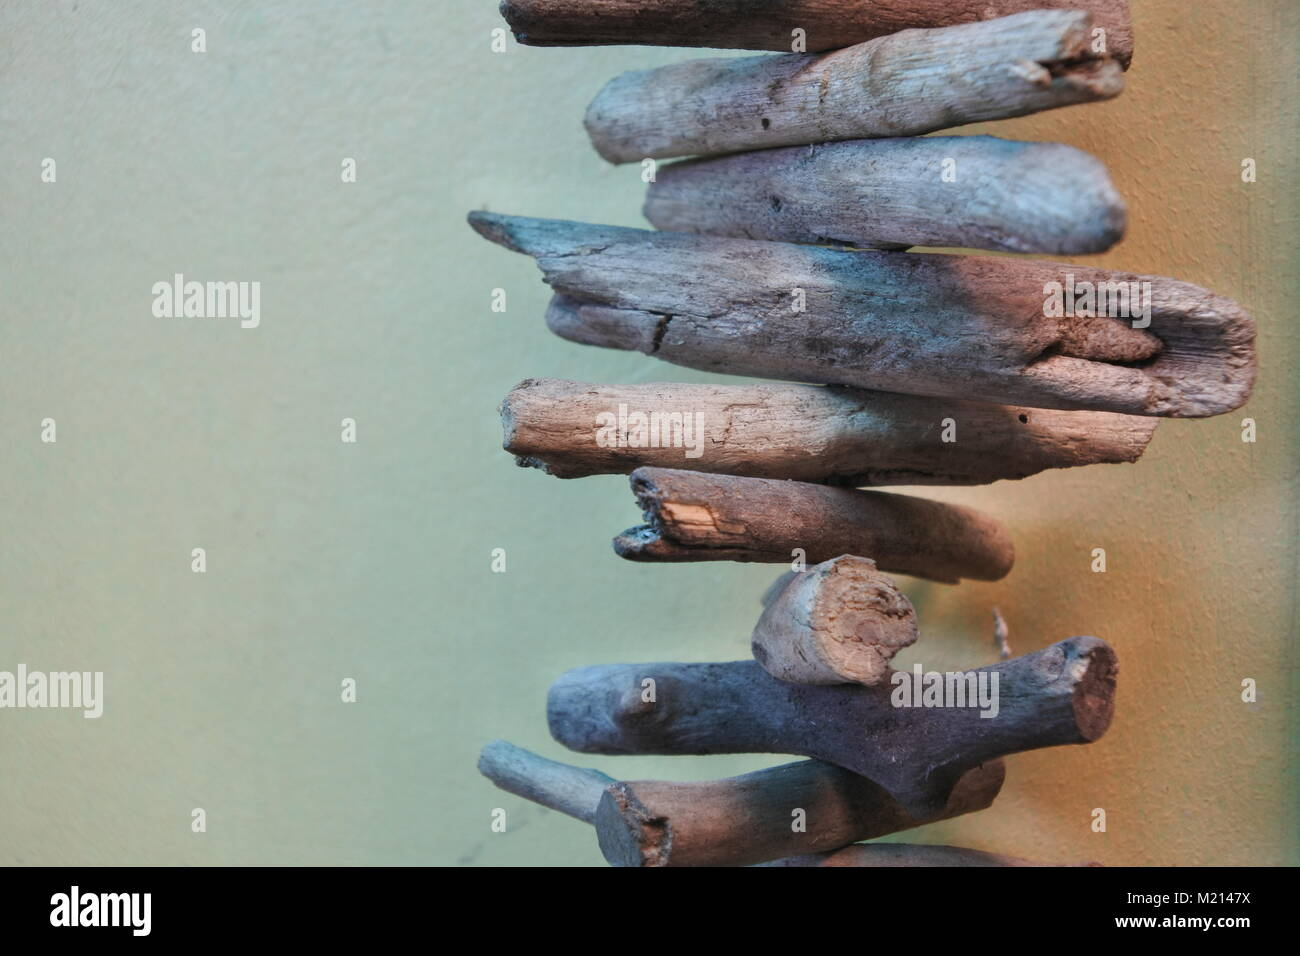 Small wood stems that is attached to each other. - Stock Image